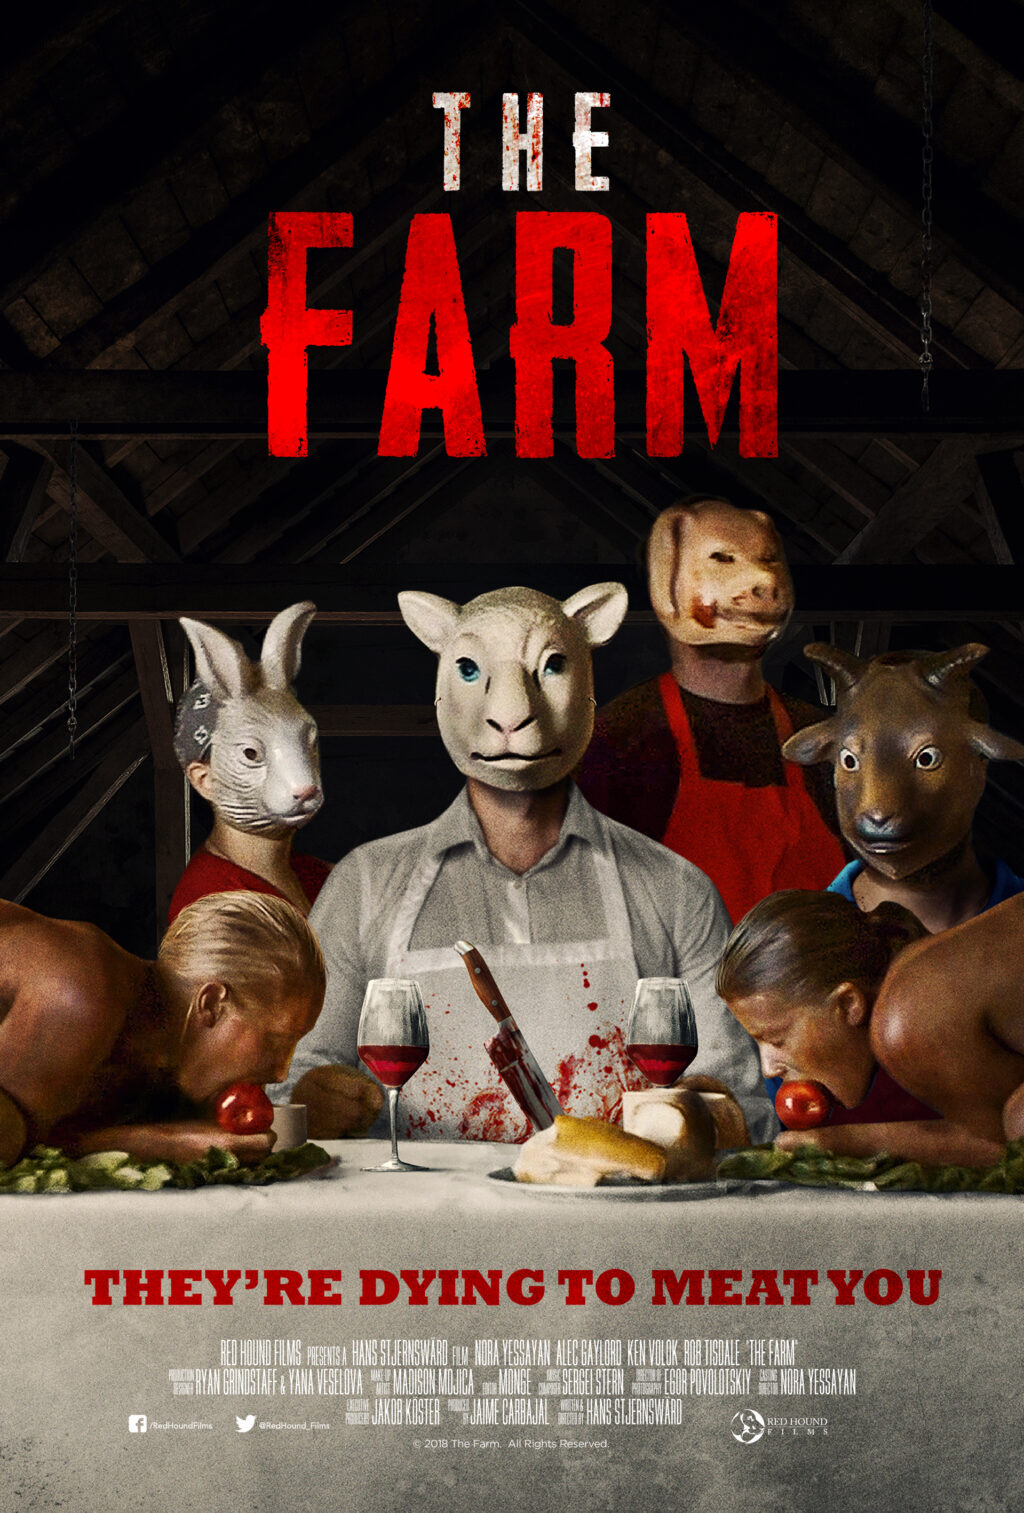 TheFarm Poster Web 1024x1513 - Exclusive Look at New Official Poster for Cannibal Horror THE FARM